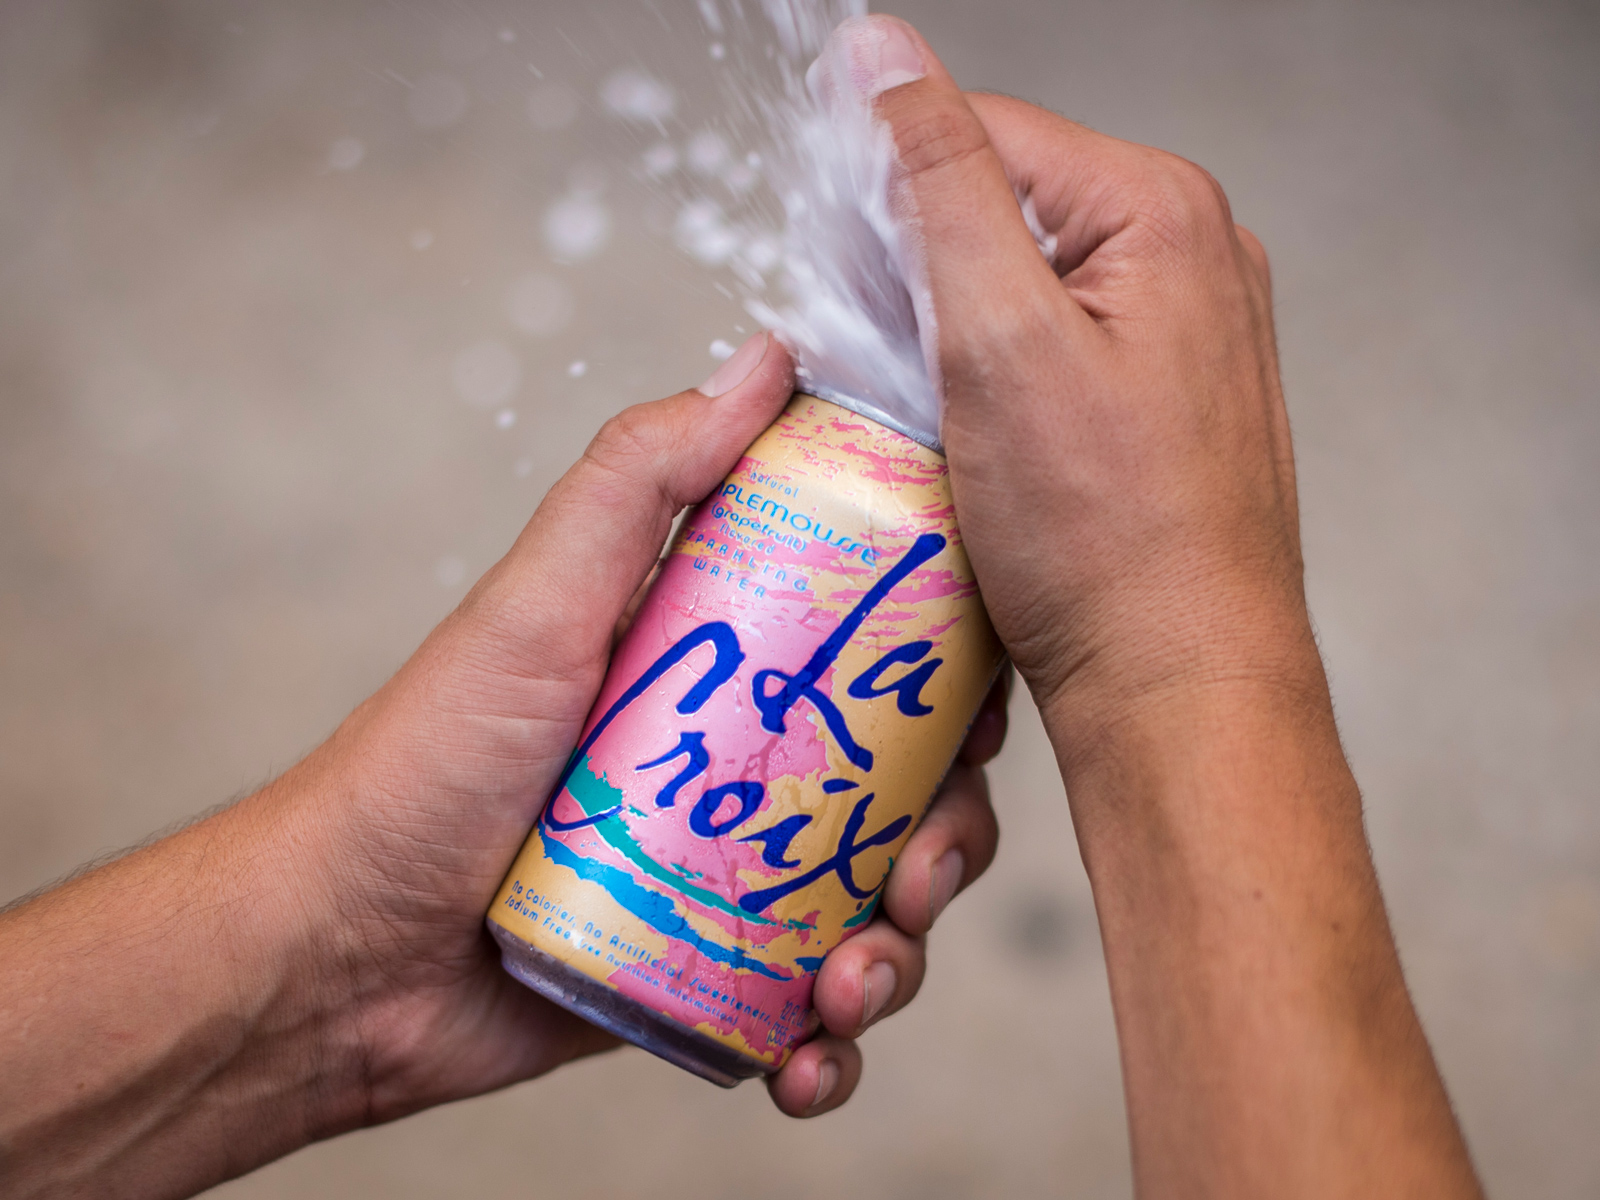 Technically, LaCroix Shouldn't Be Sold in Massachusetts